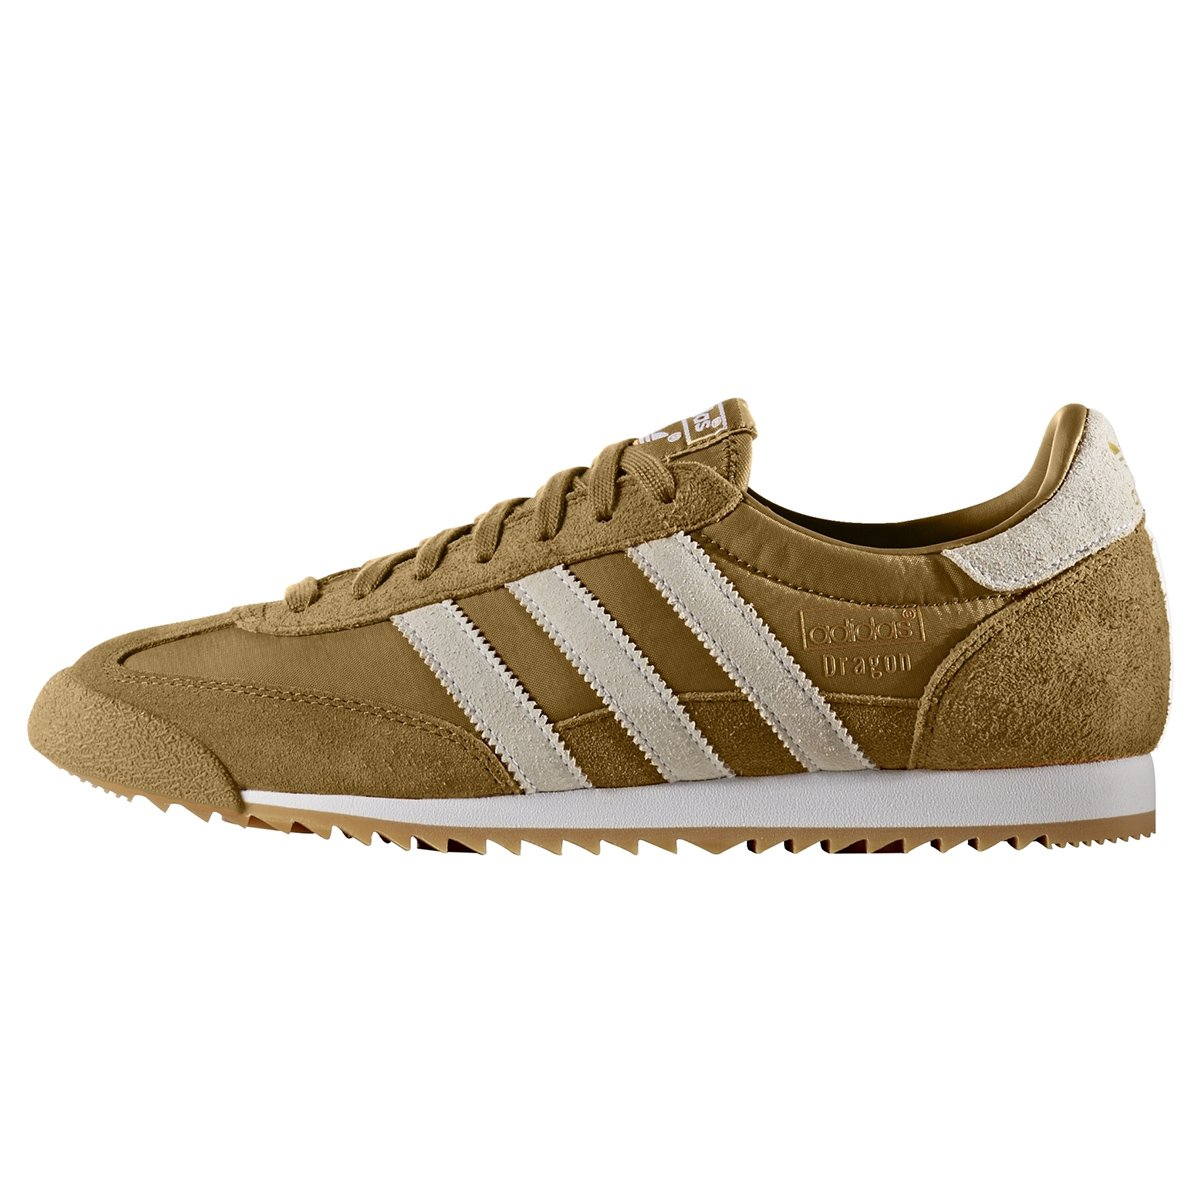 sports shoes 94d60 93488 Adidas Dragon Vintage BB1262. Scarpe Donna. Sneakers. (38 2 3 EU,  Mesa White Gum)  Amazon.it  Scarpe e borse